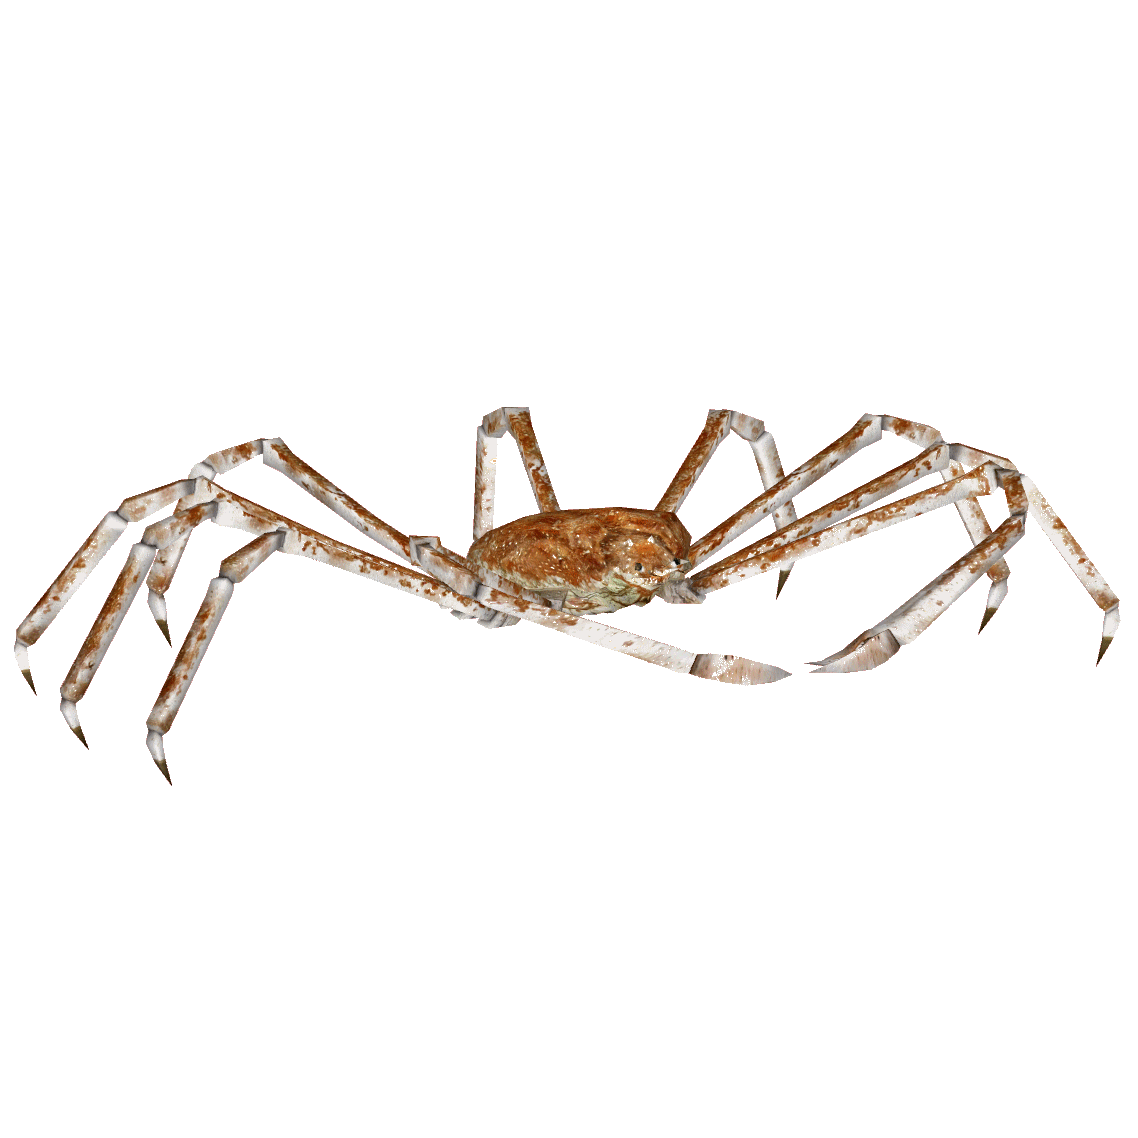 Spider crab png. Japanese hendrix zt download